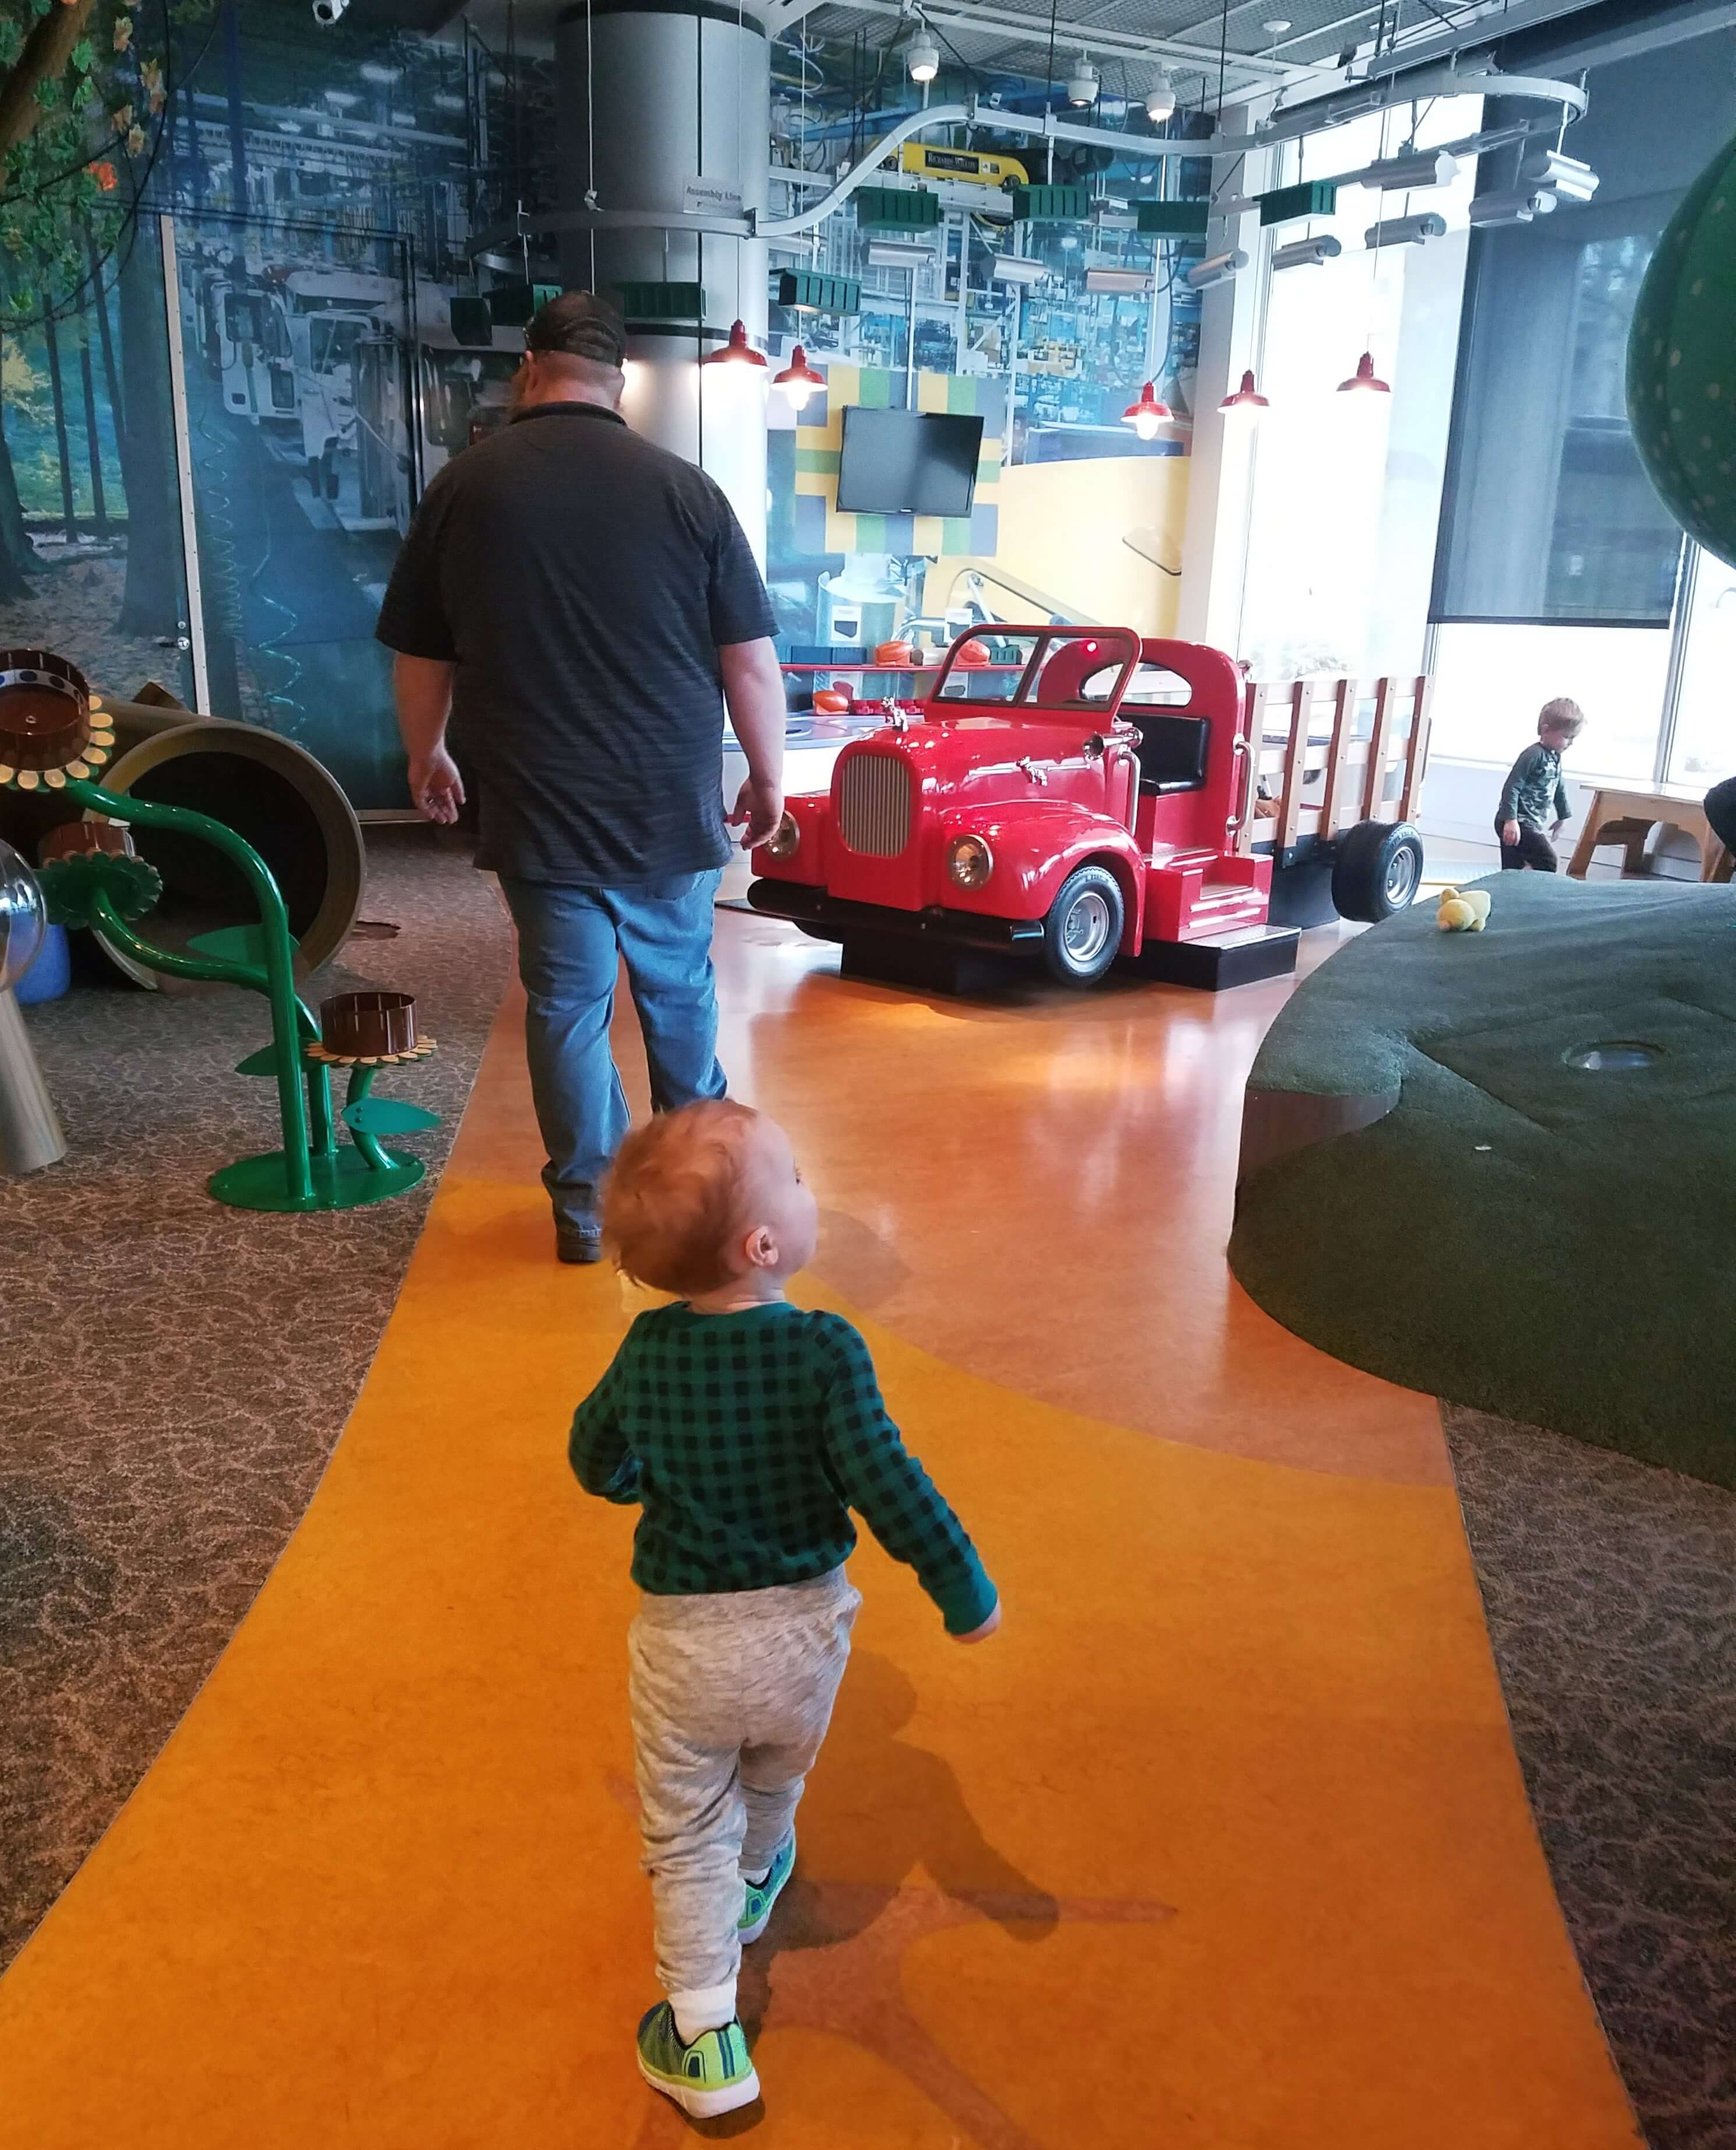 The State Museum of Pennsylvania with a Toddler